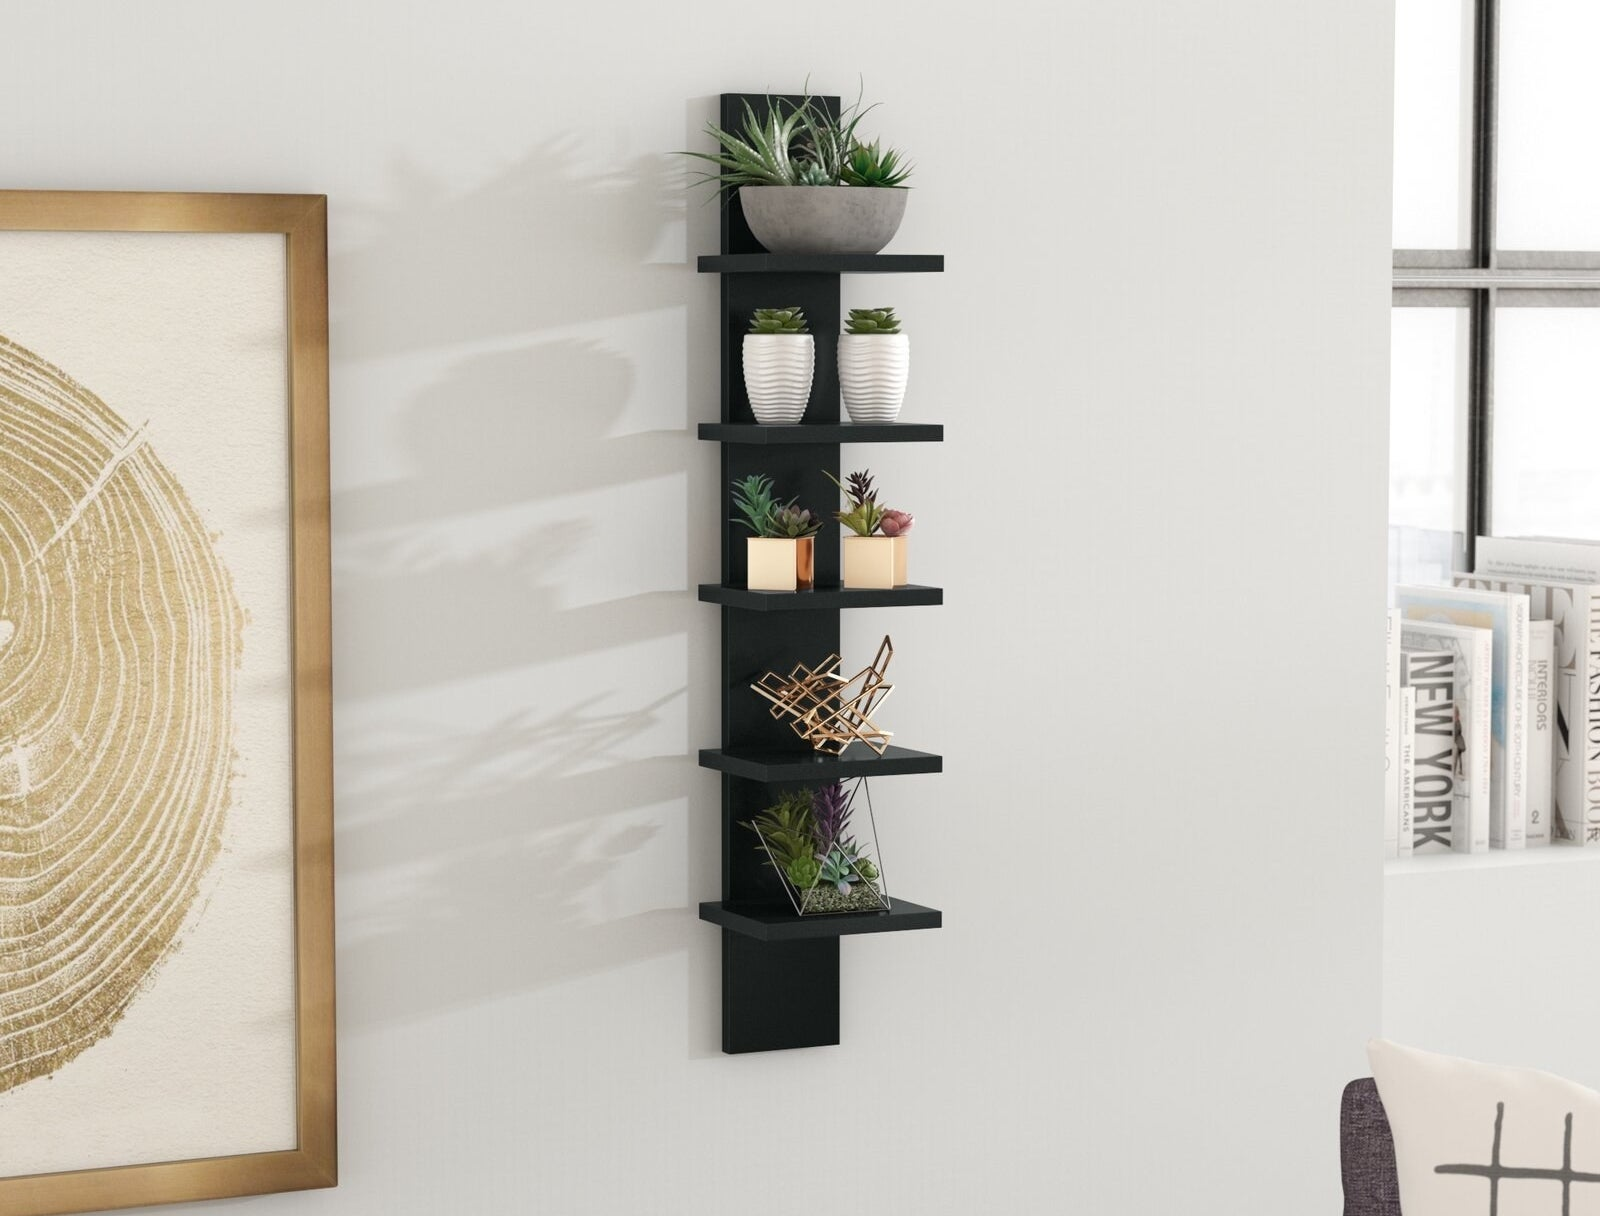 Hanging wall shelf with five shelves for added storage or display purposes